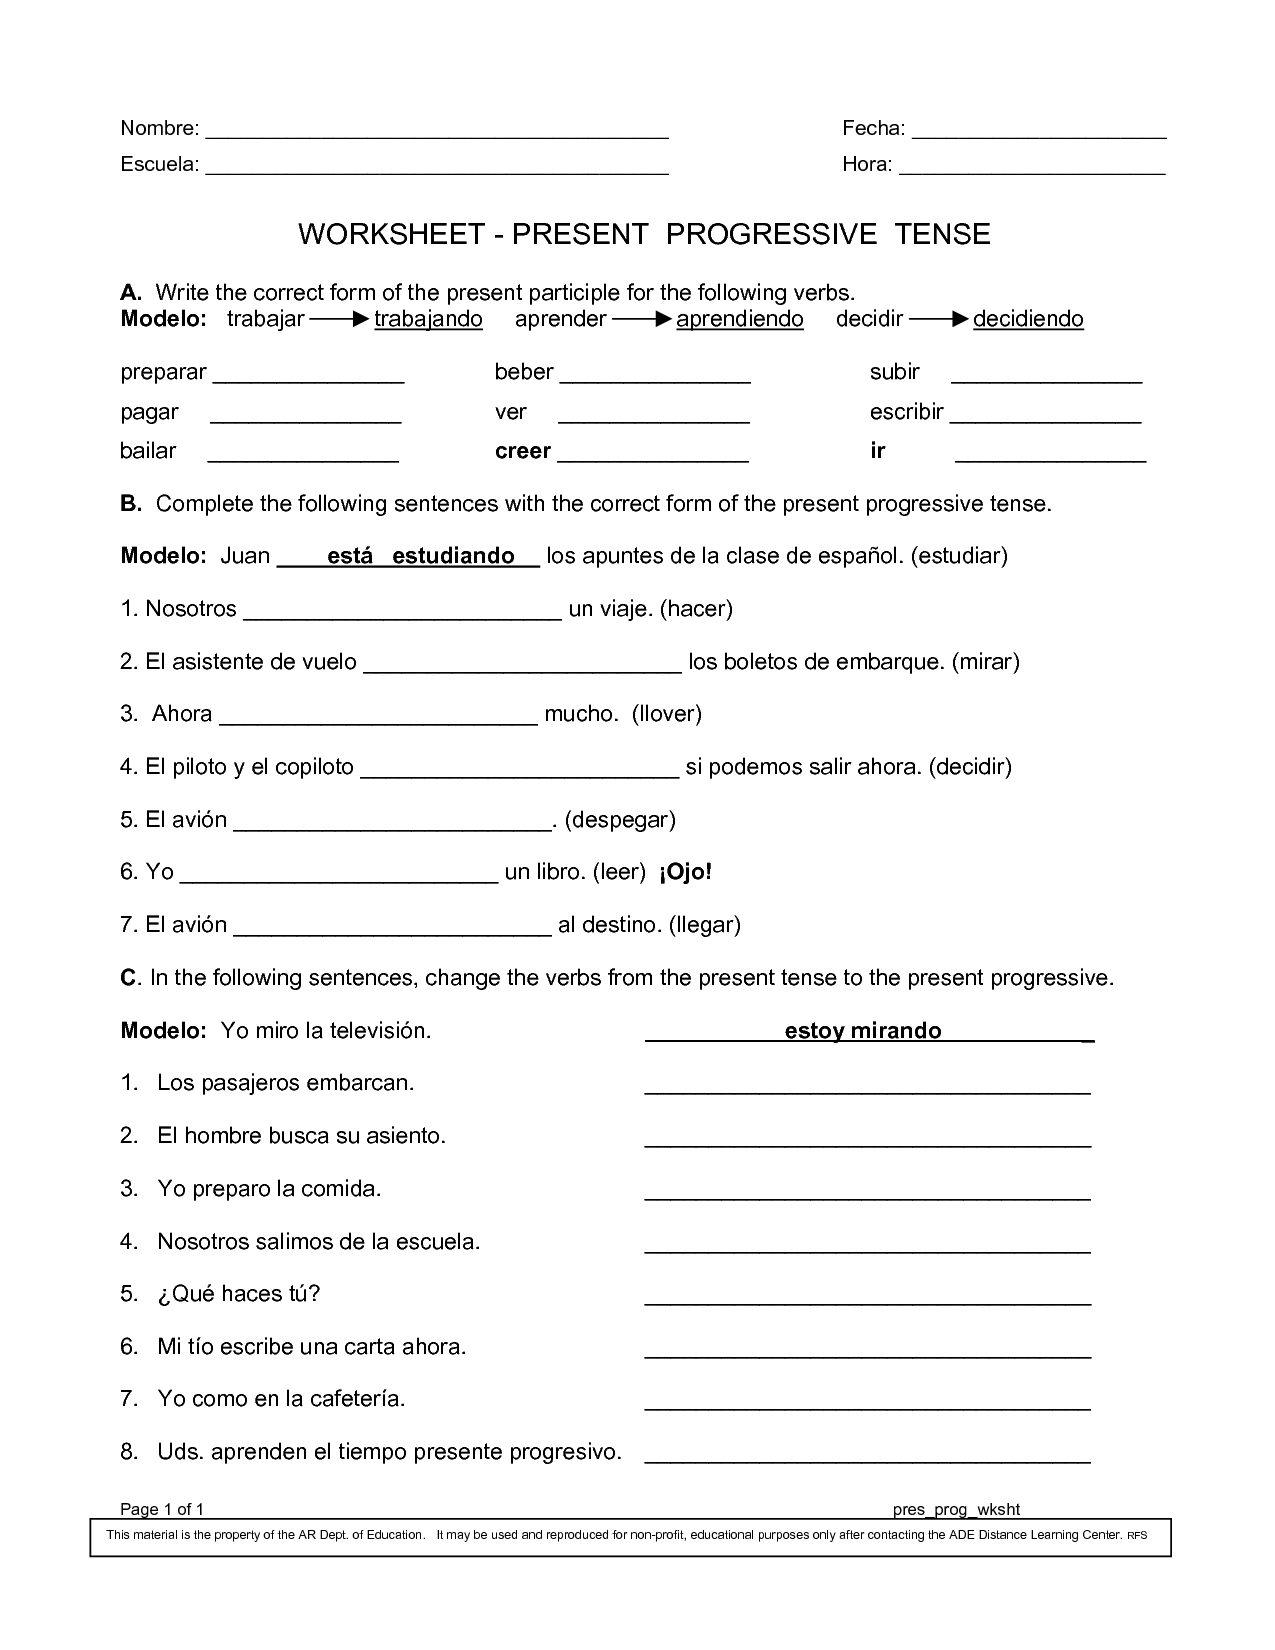 Worksheets Spanish Practice Worksheets spanish progressive worksheets present past progressives future 123teachme teaching resources language learning